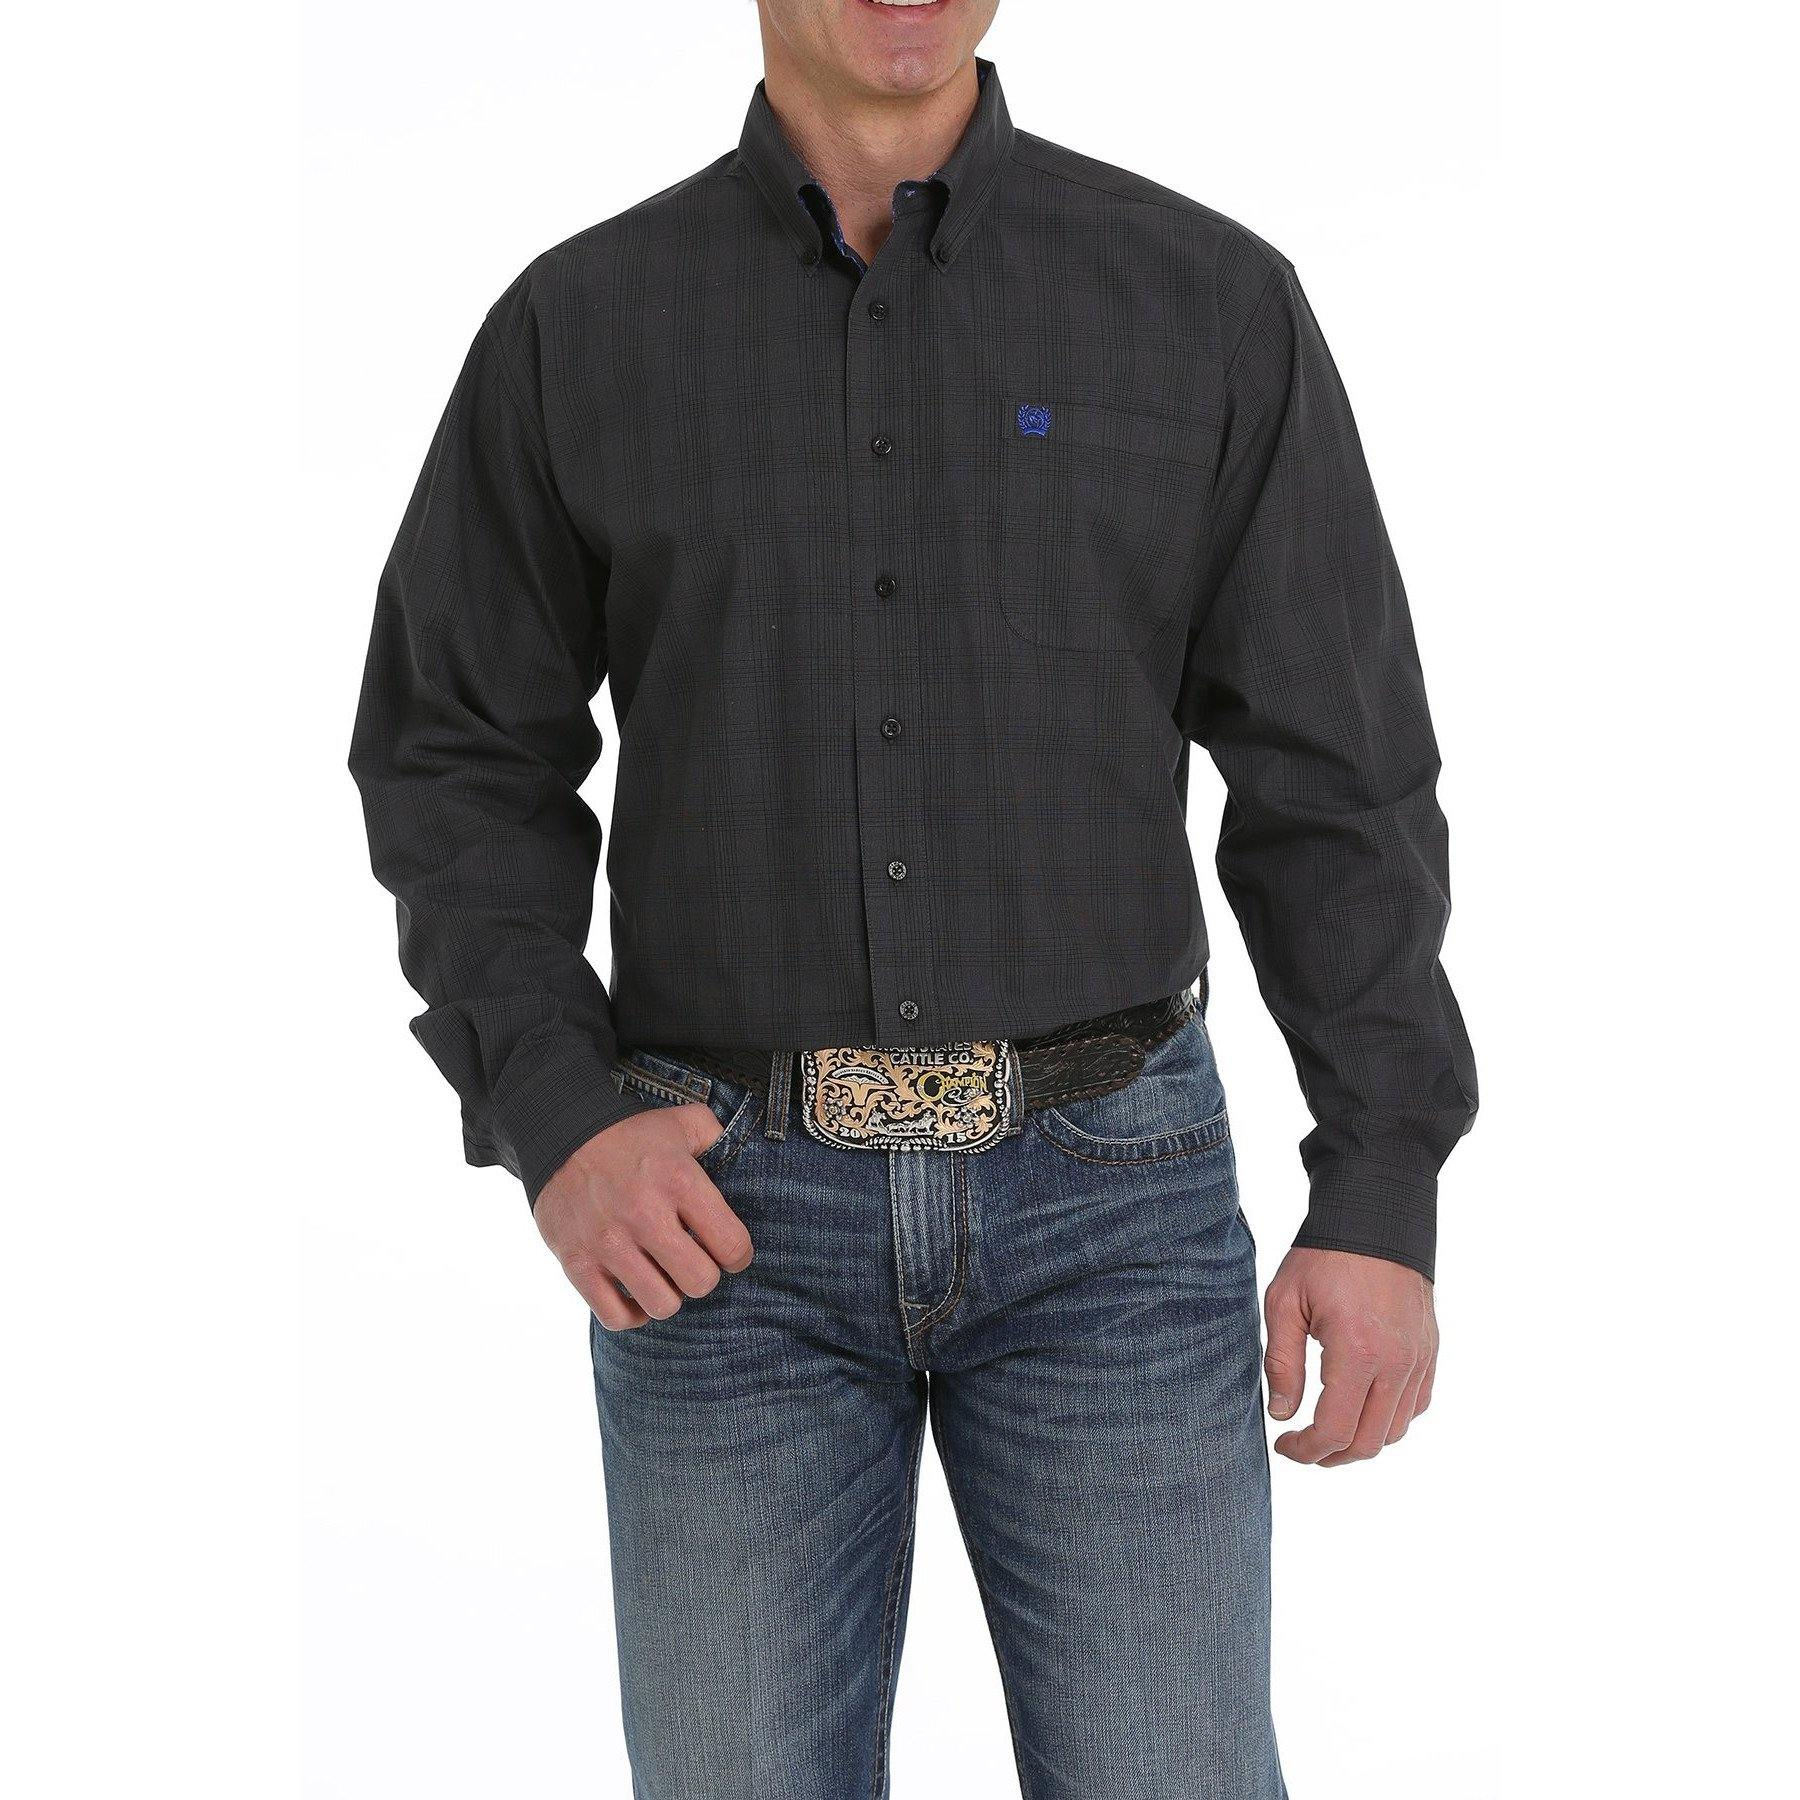 CINCH MEN'S BLACK AND GRAY PLAID BUTTON-DOWN WESTERN SHIRT - CWesternwear